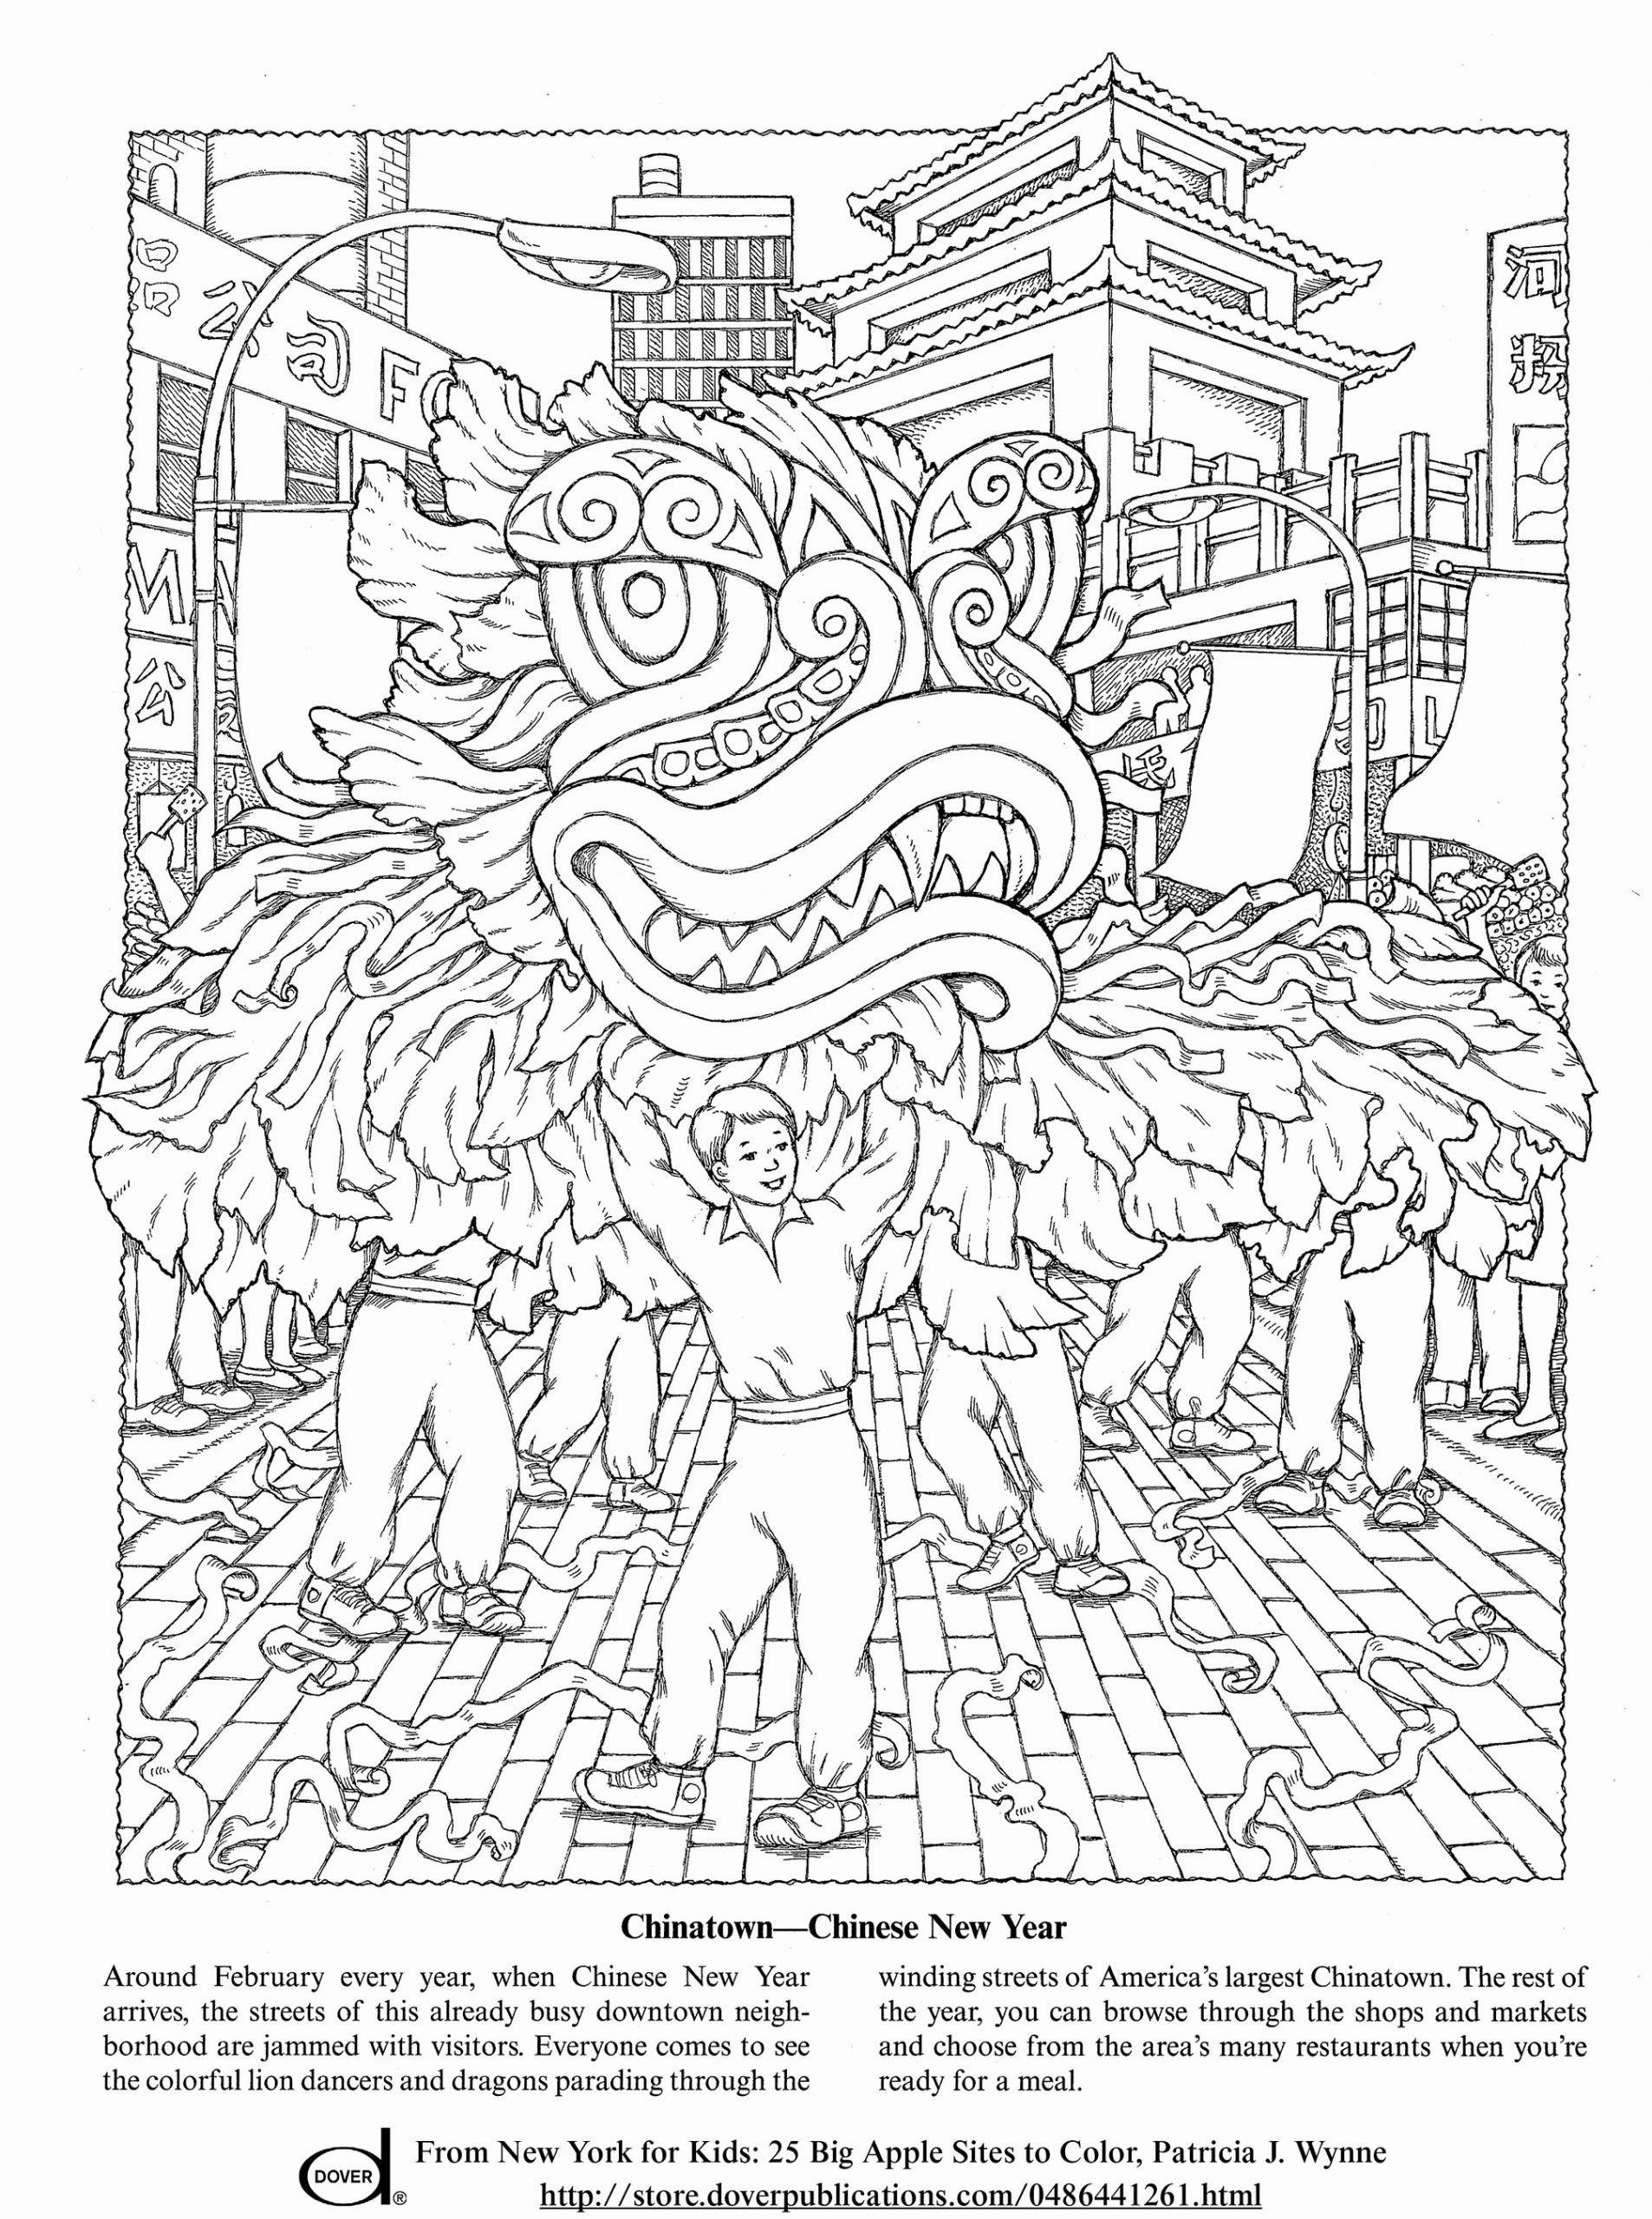 Chinese New Year Coloring Sheet Coloring Book Dltk ...